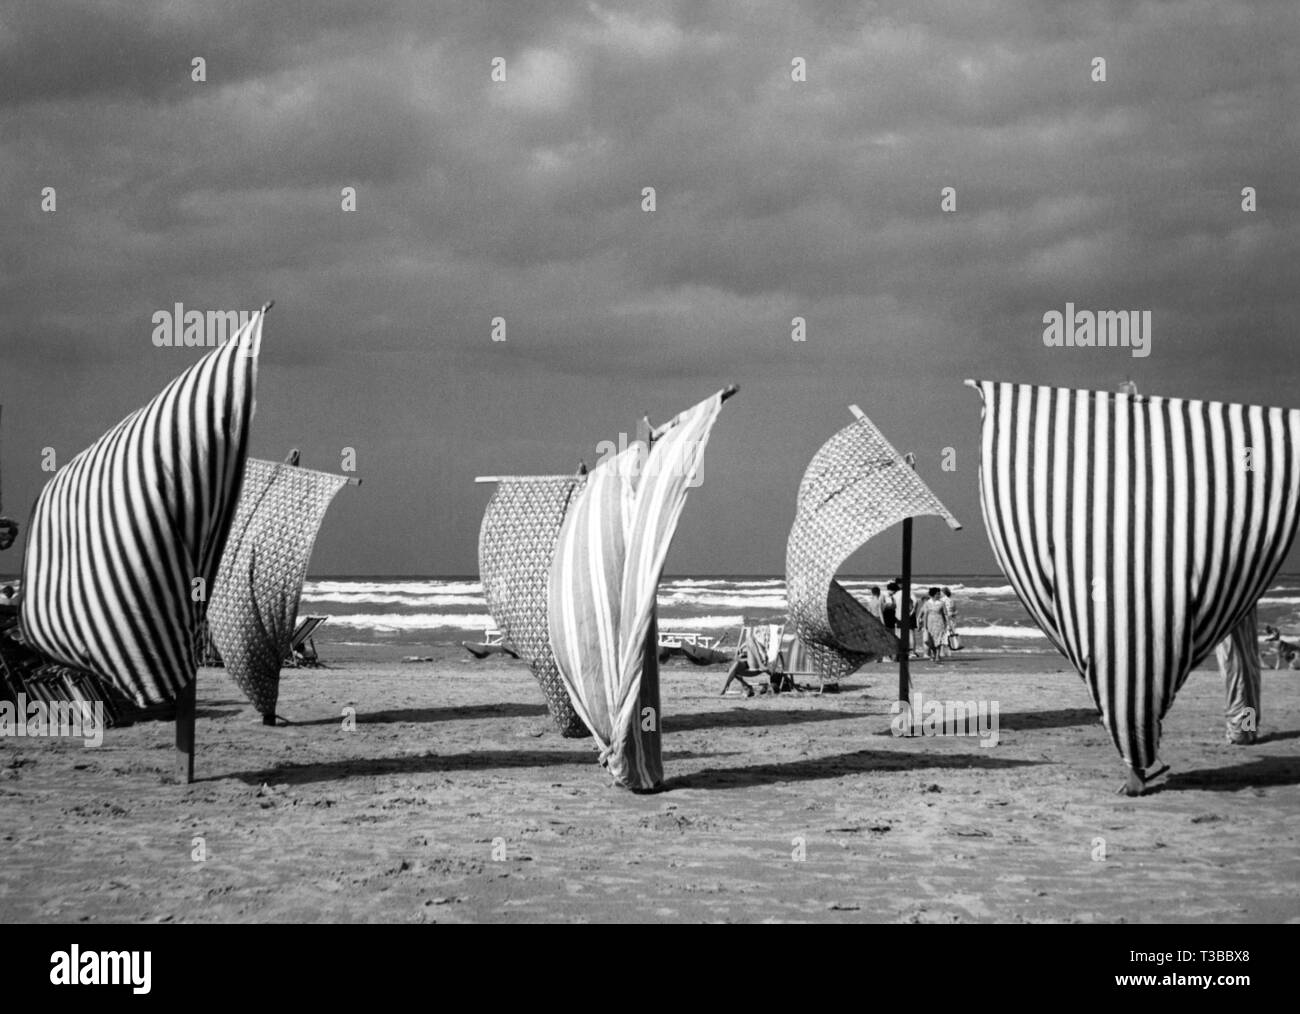 tents on the beach, italy, 1955 - Stock Image